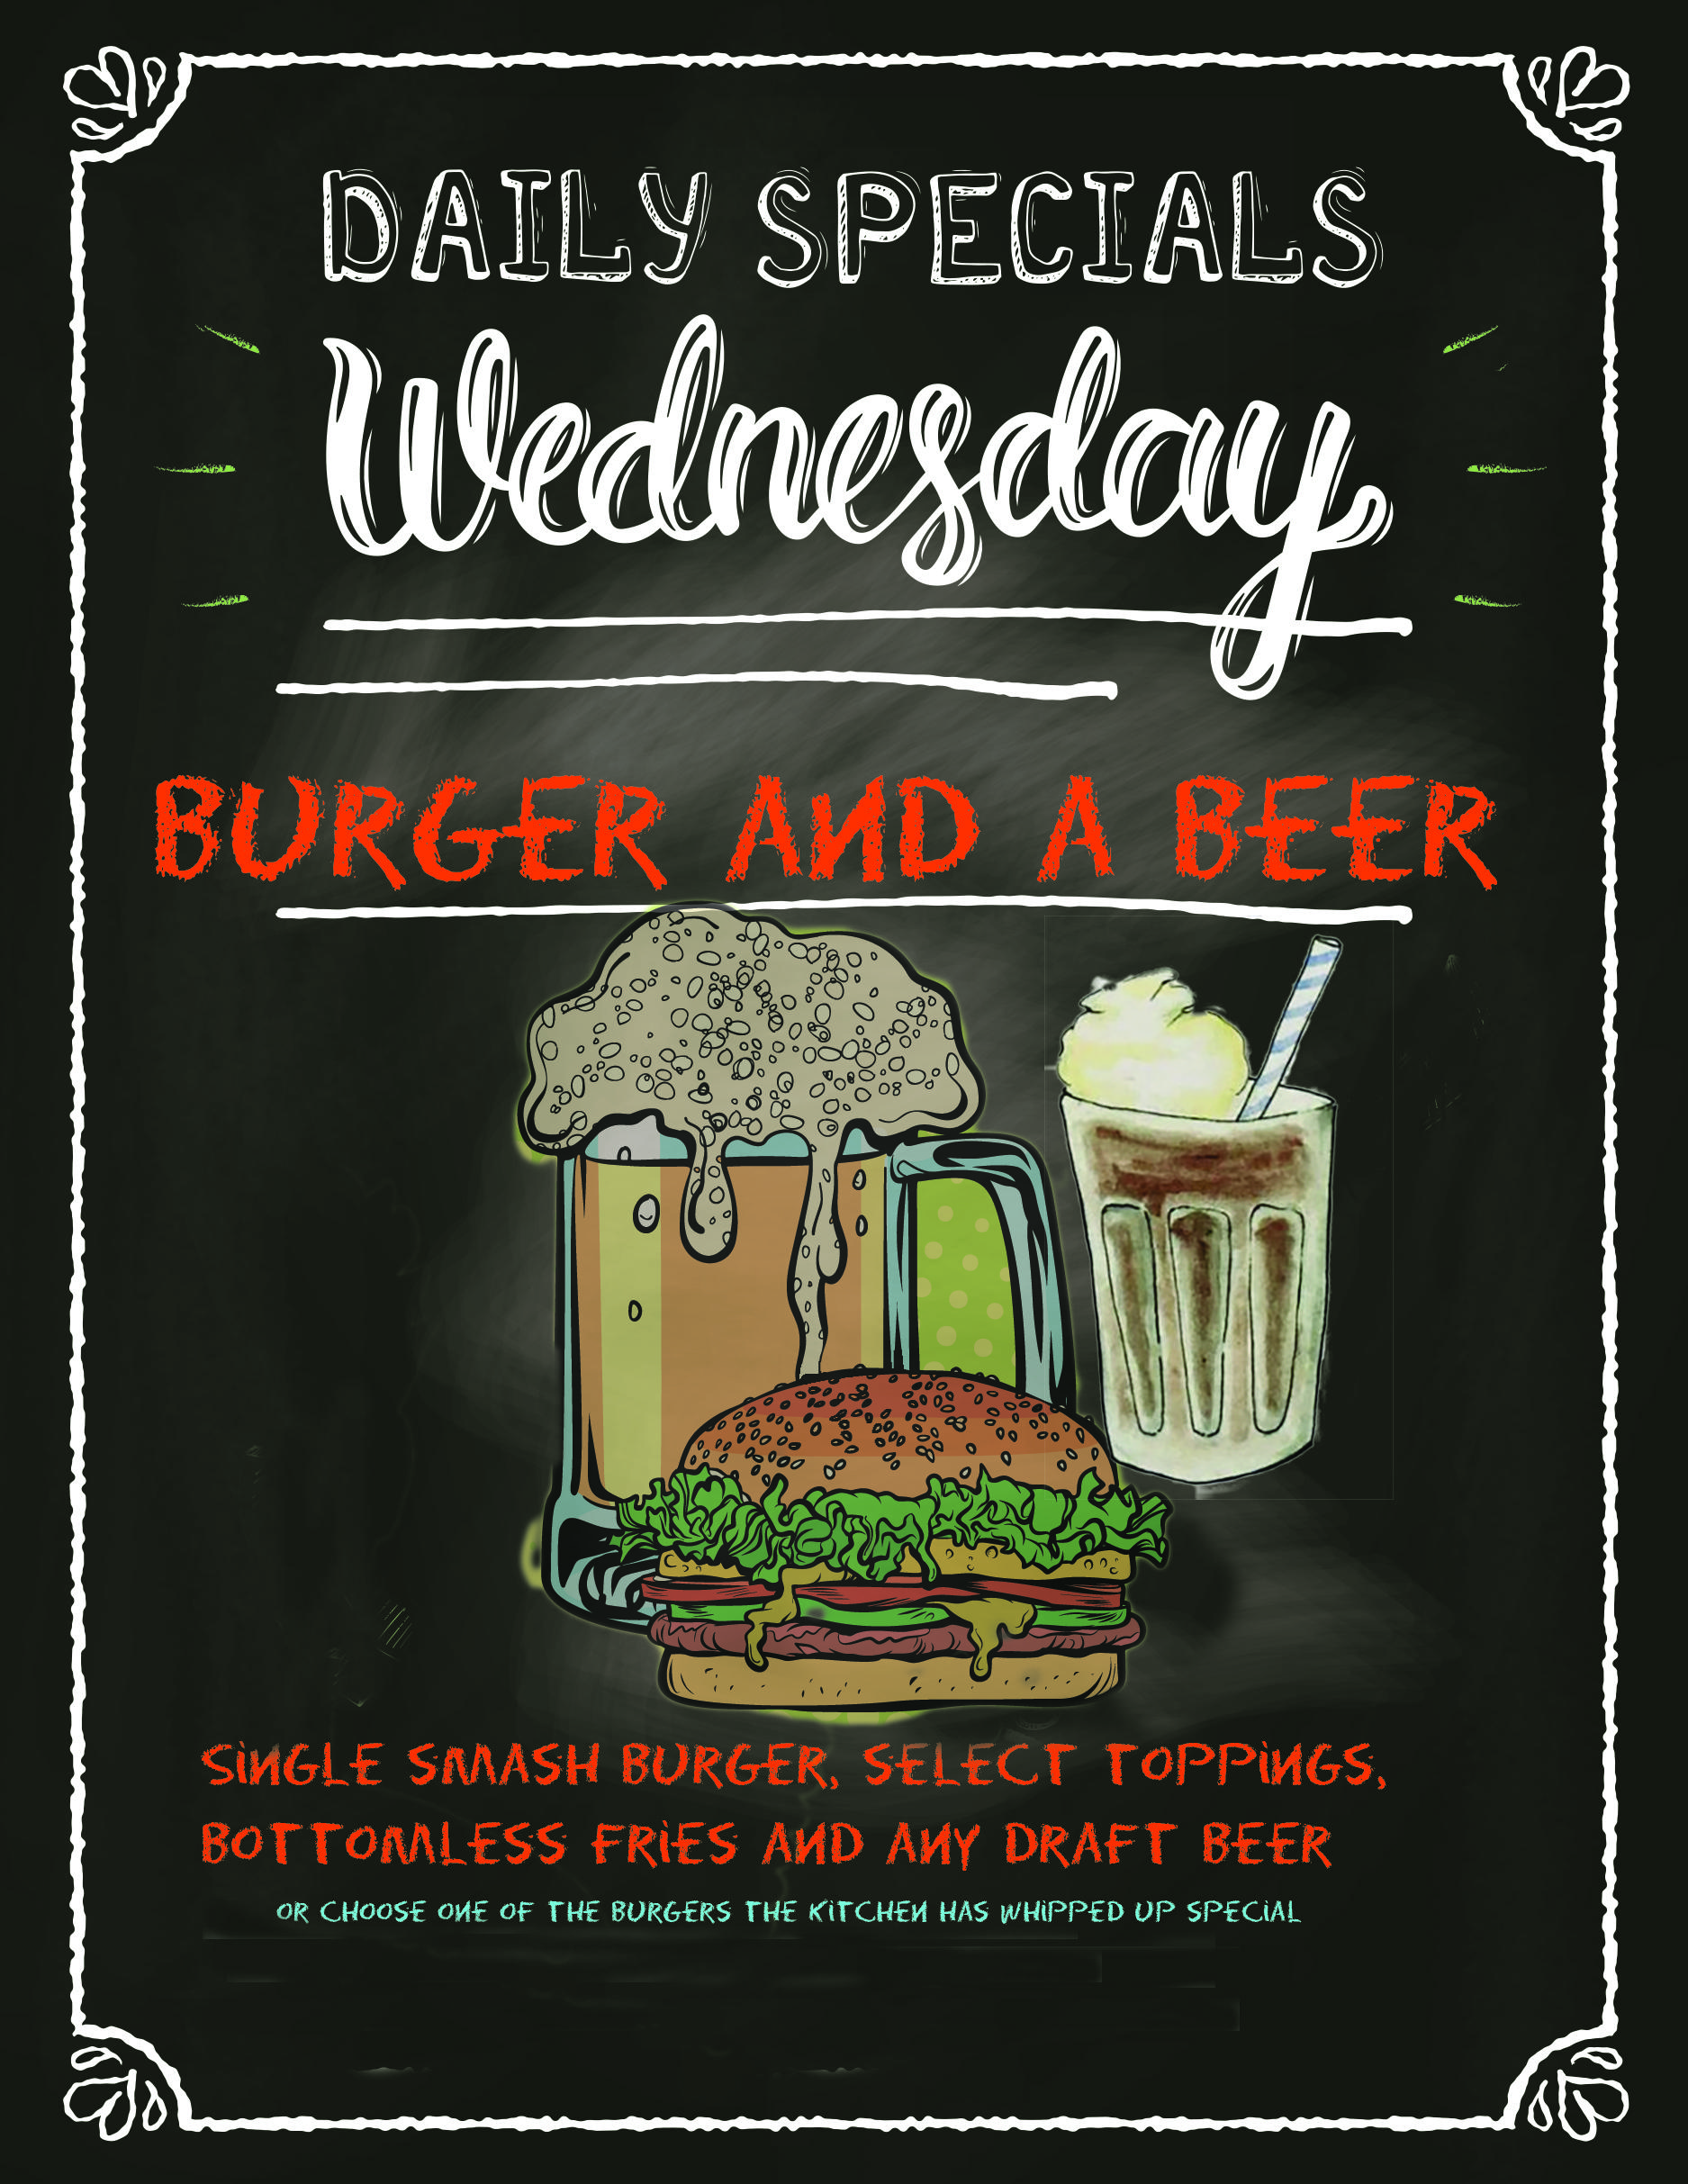 Daily specials Wednesday. burger and a beer. Single smash burger, select toppings, bottomless fries and any draft beer. Or choose one of the burgers the kitchen has whipped up special.